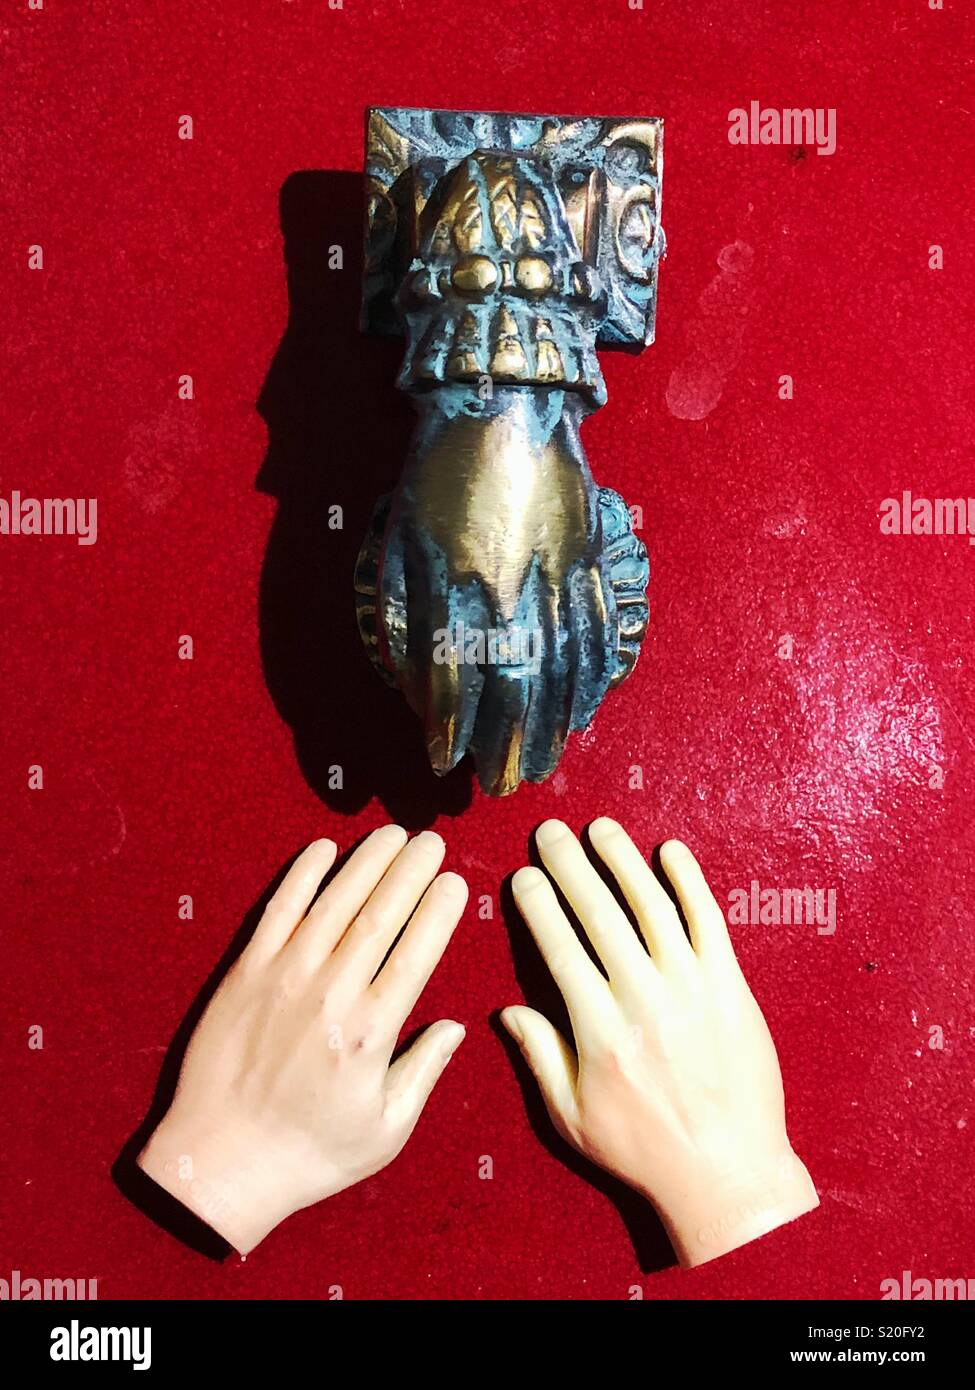 Two plastic finger toy hands in front of bronze hand shaped door knocker on red background - Stock Image